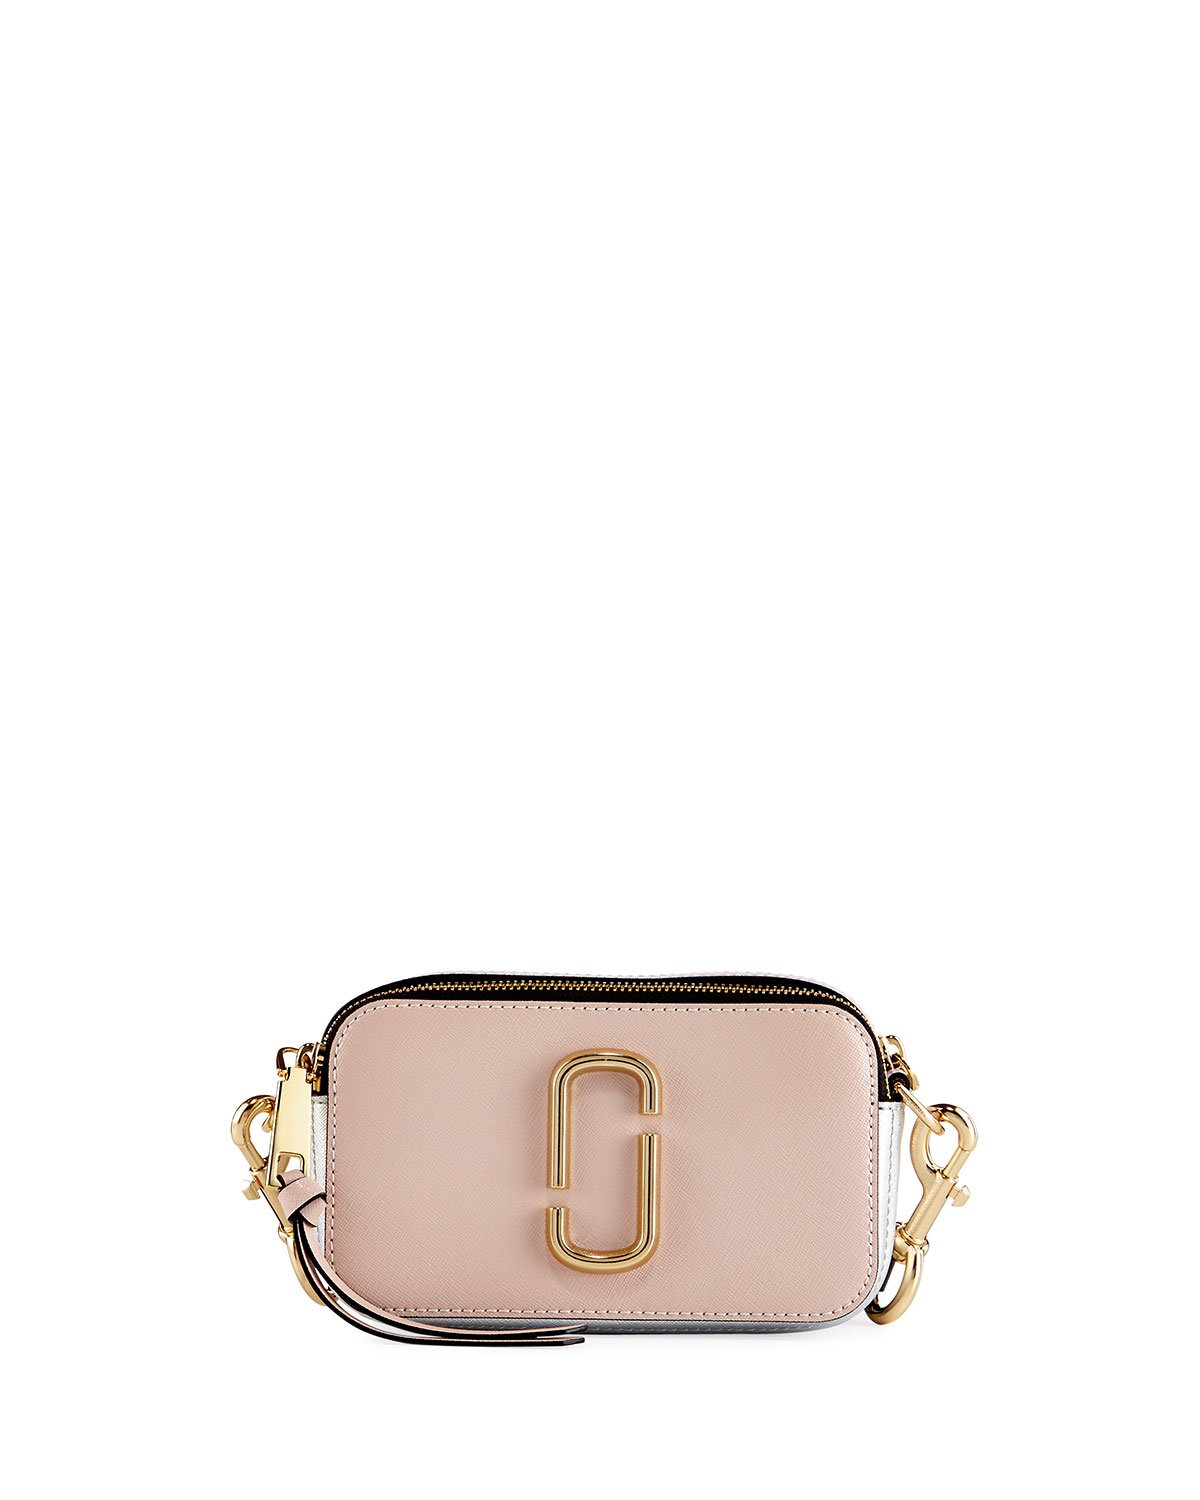 5fa7f5fdc6b2 Marc Jacobs Snapshot Colorblock Leather Camera Bag